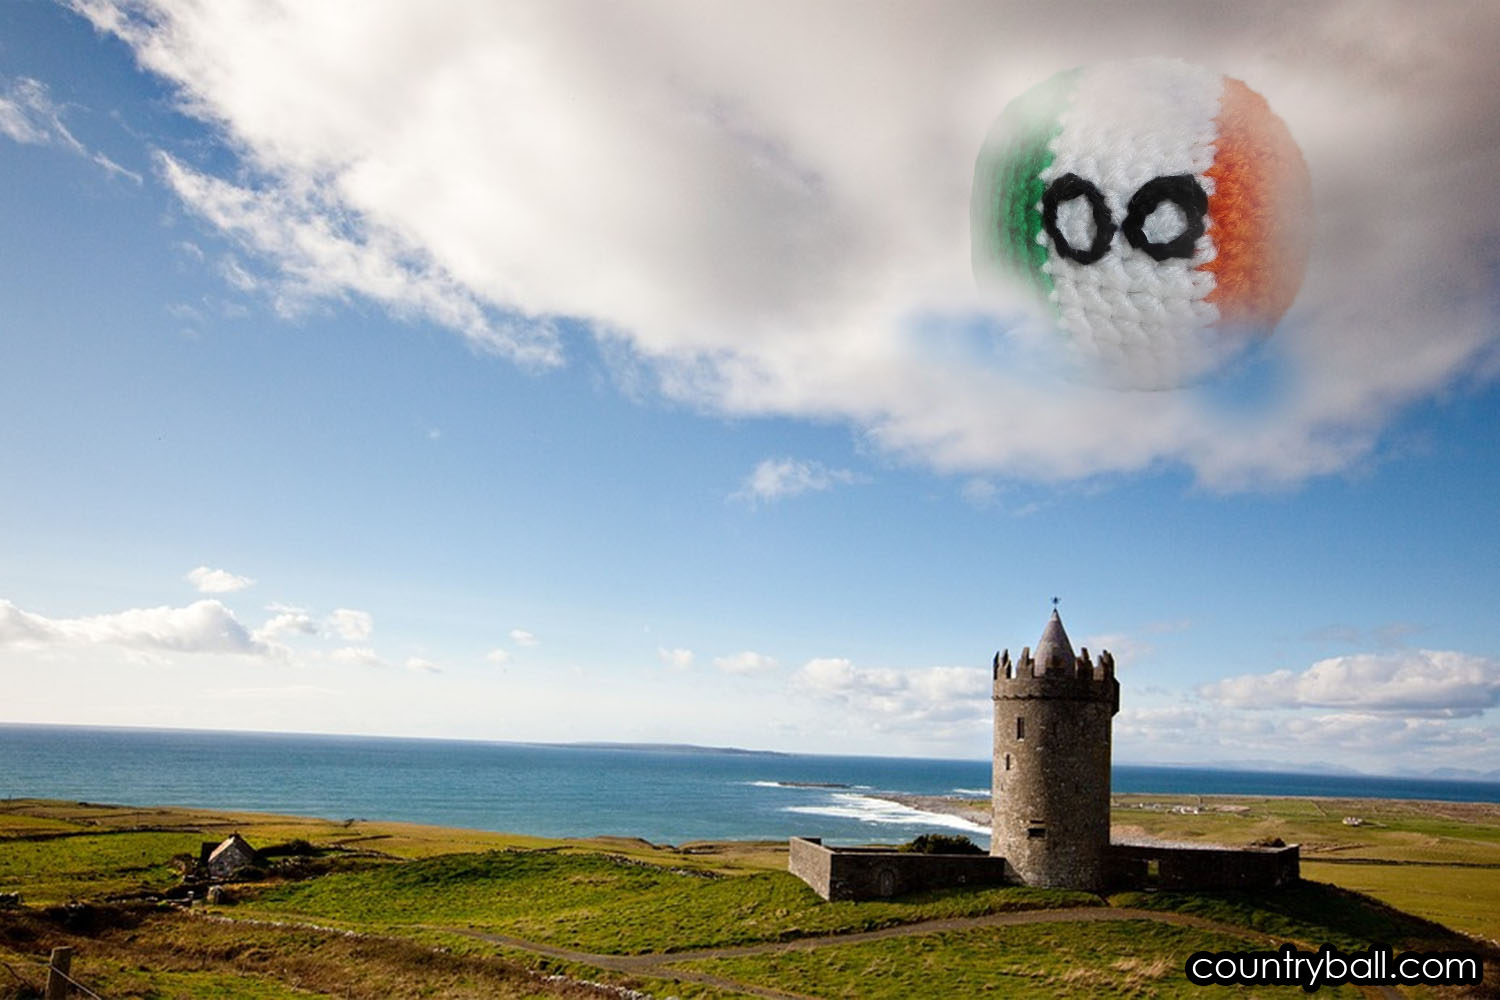 Irelandball watching over a beautiful Irish Landscape